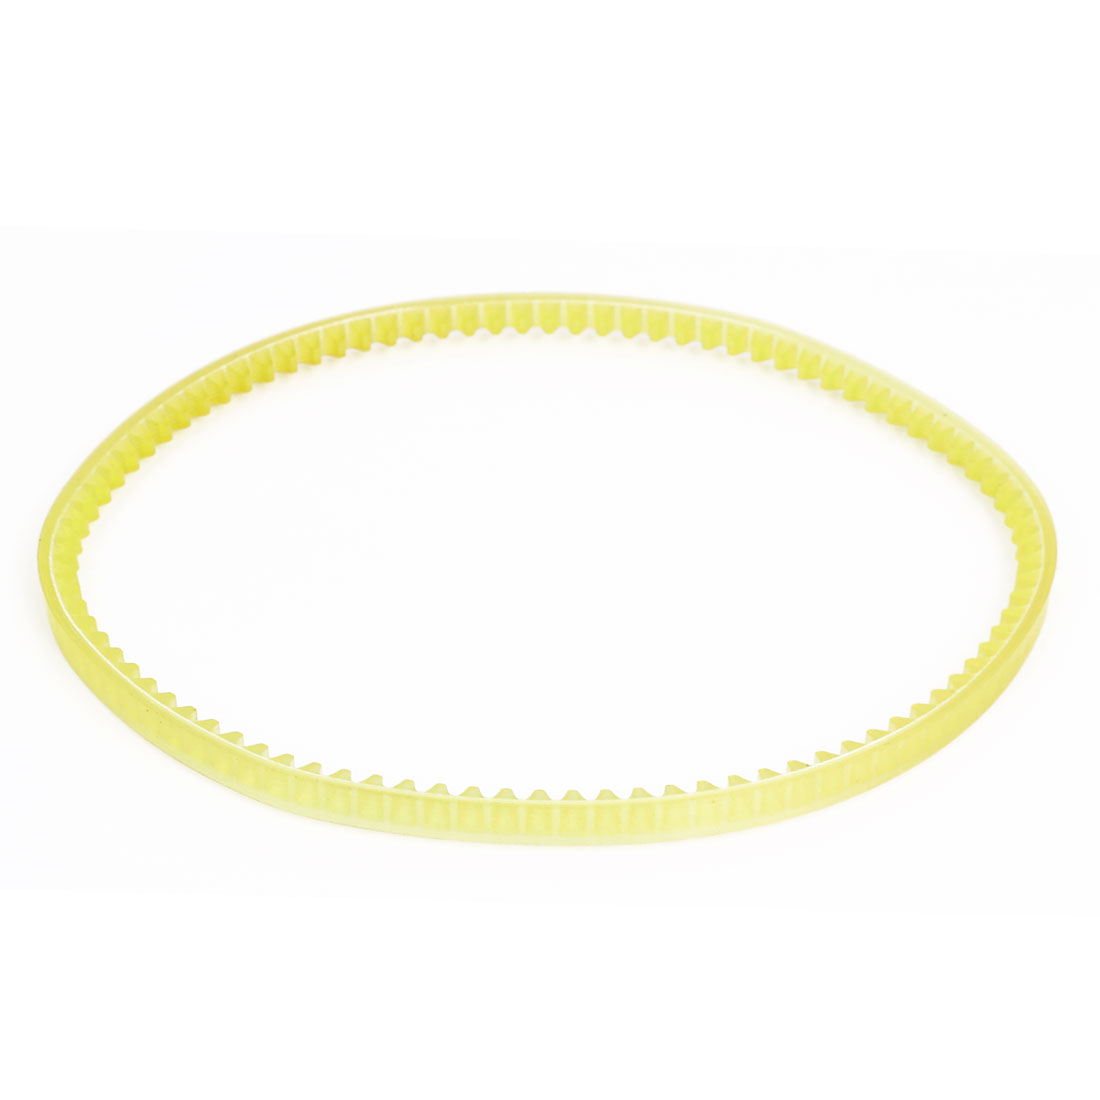 370mm Girth 6mm Width Rubber Single Side Mechine Timing Pulley Belt Yellow